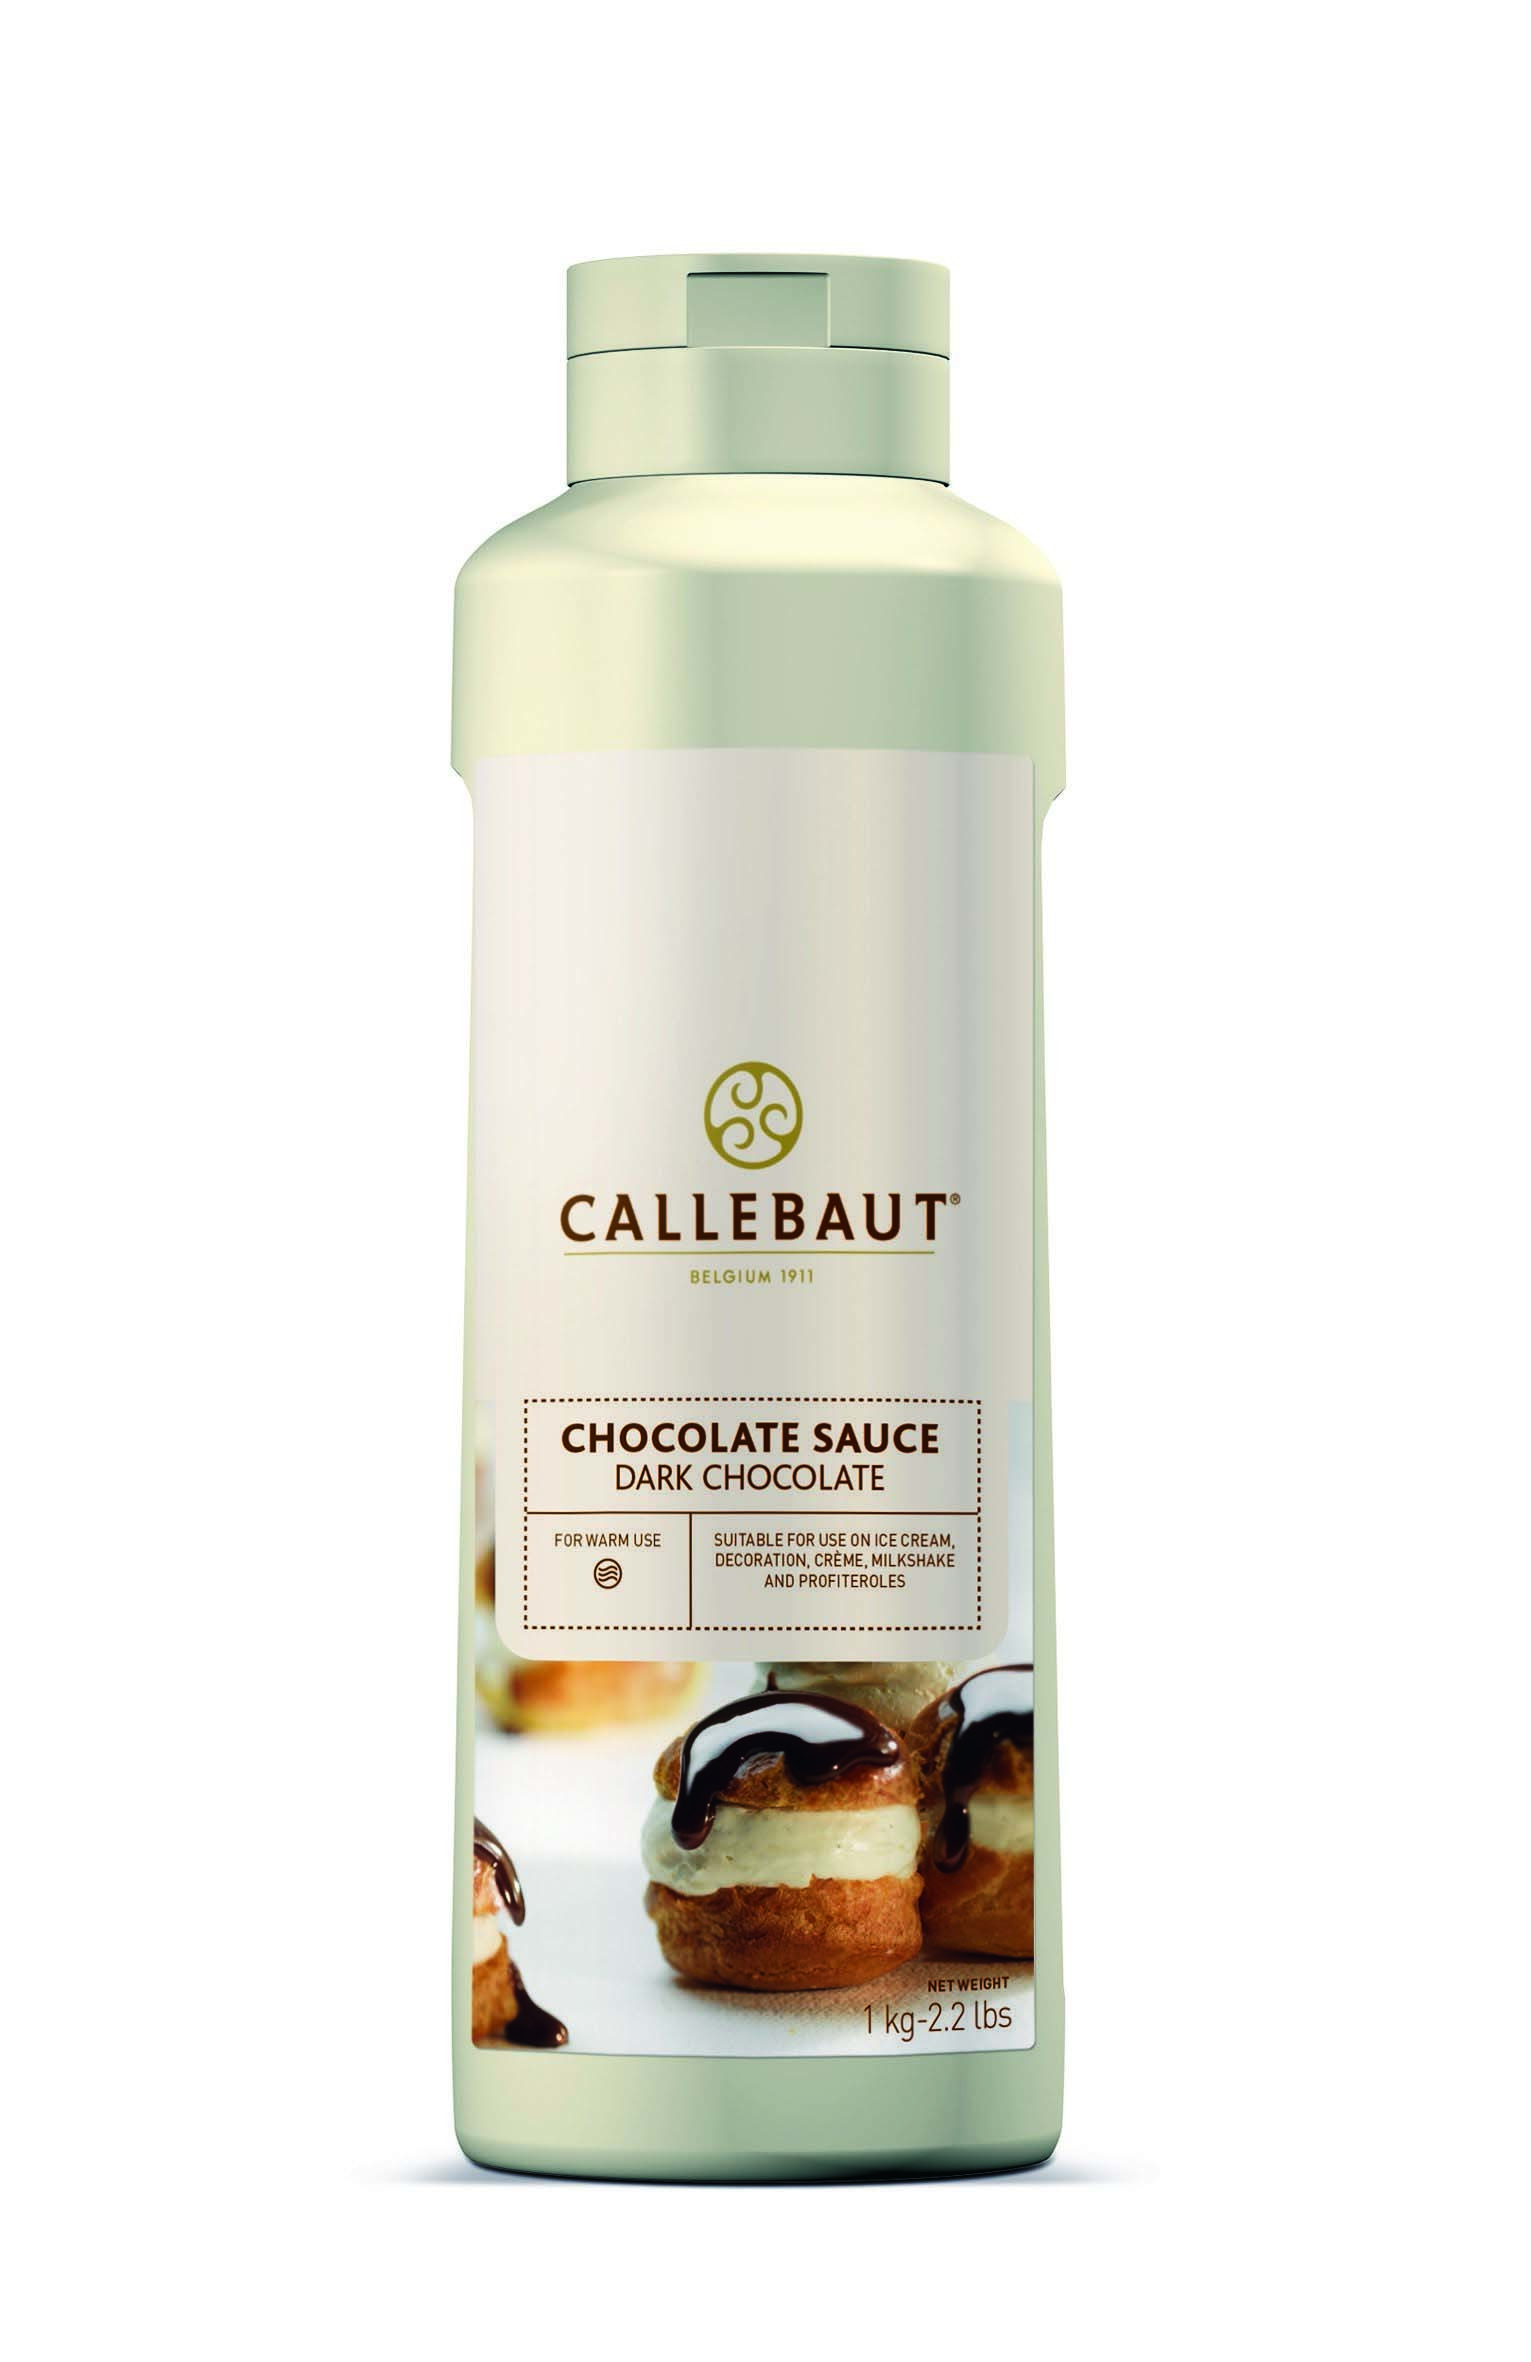 Callebaut dark chocolate Topping 1L squeezable bottle